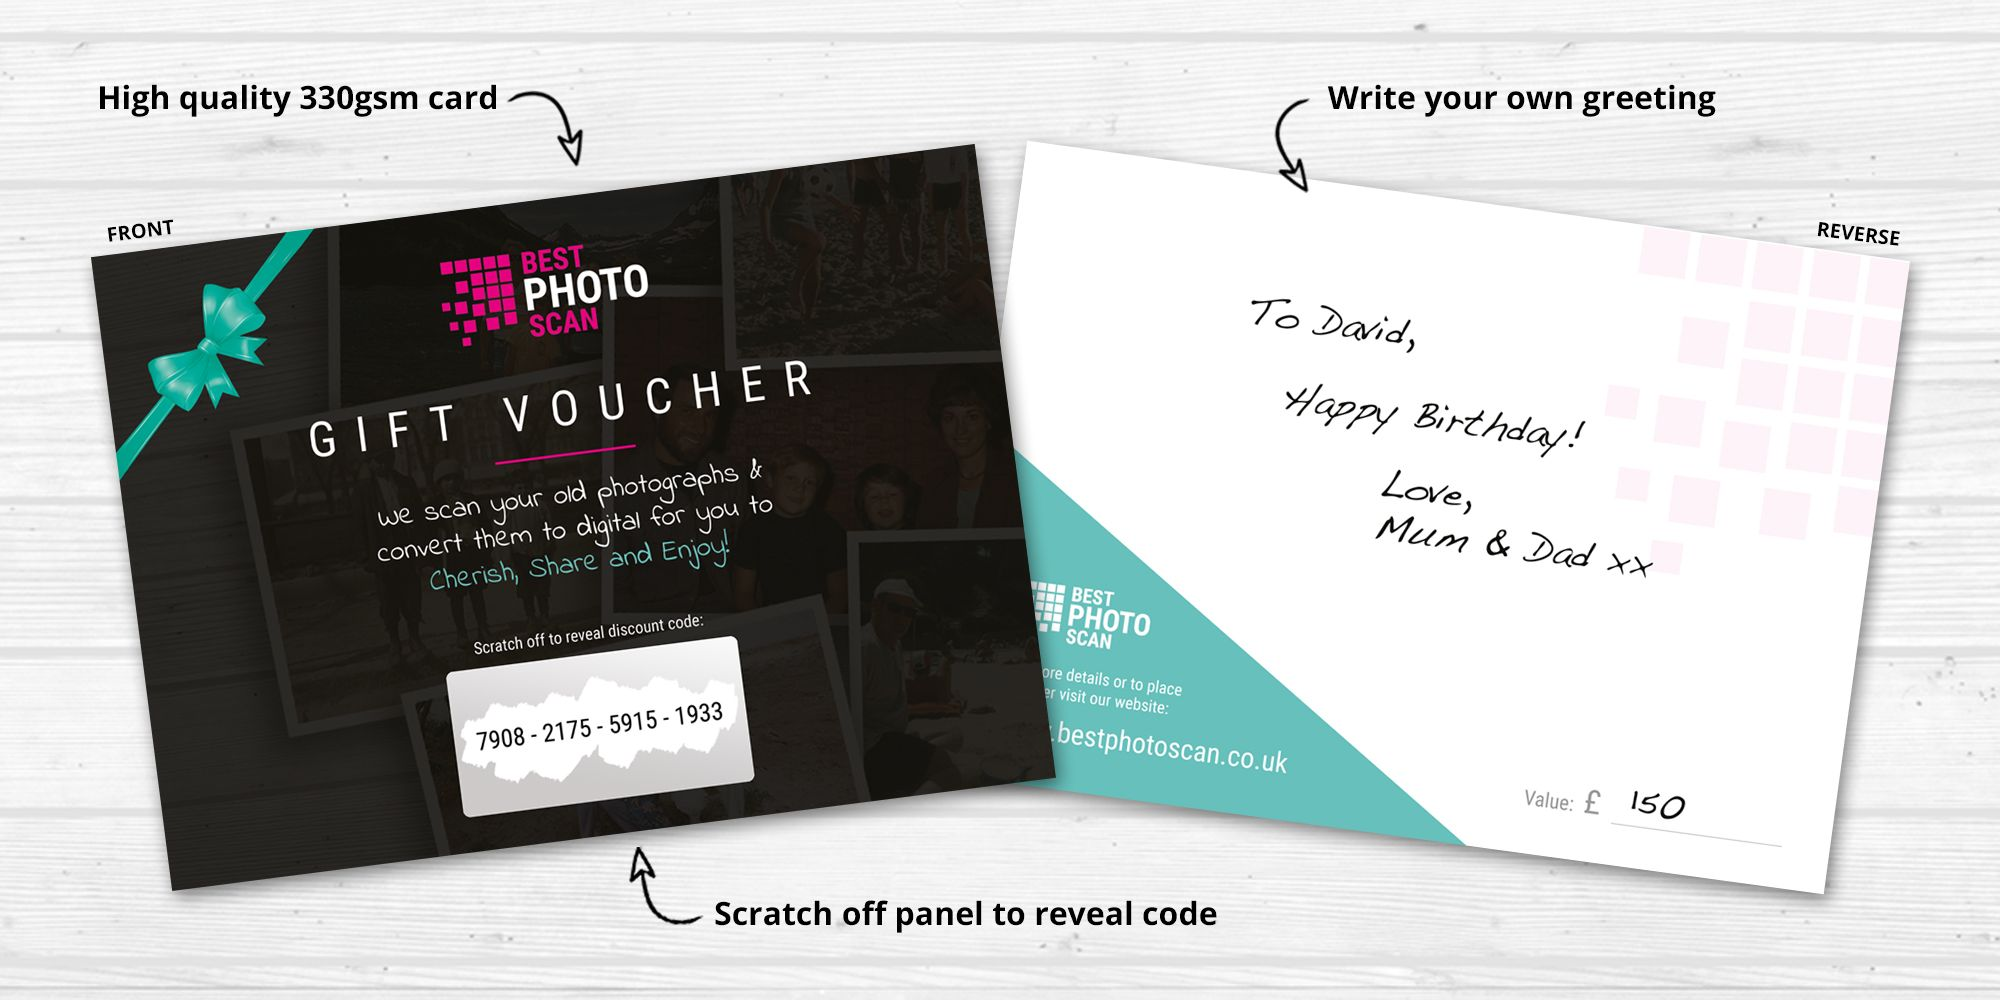 Gift vouchers best photo scan features reheart Image collections